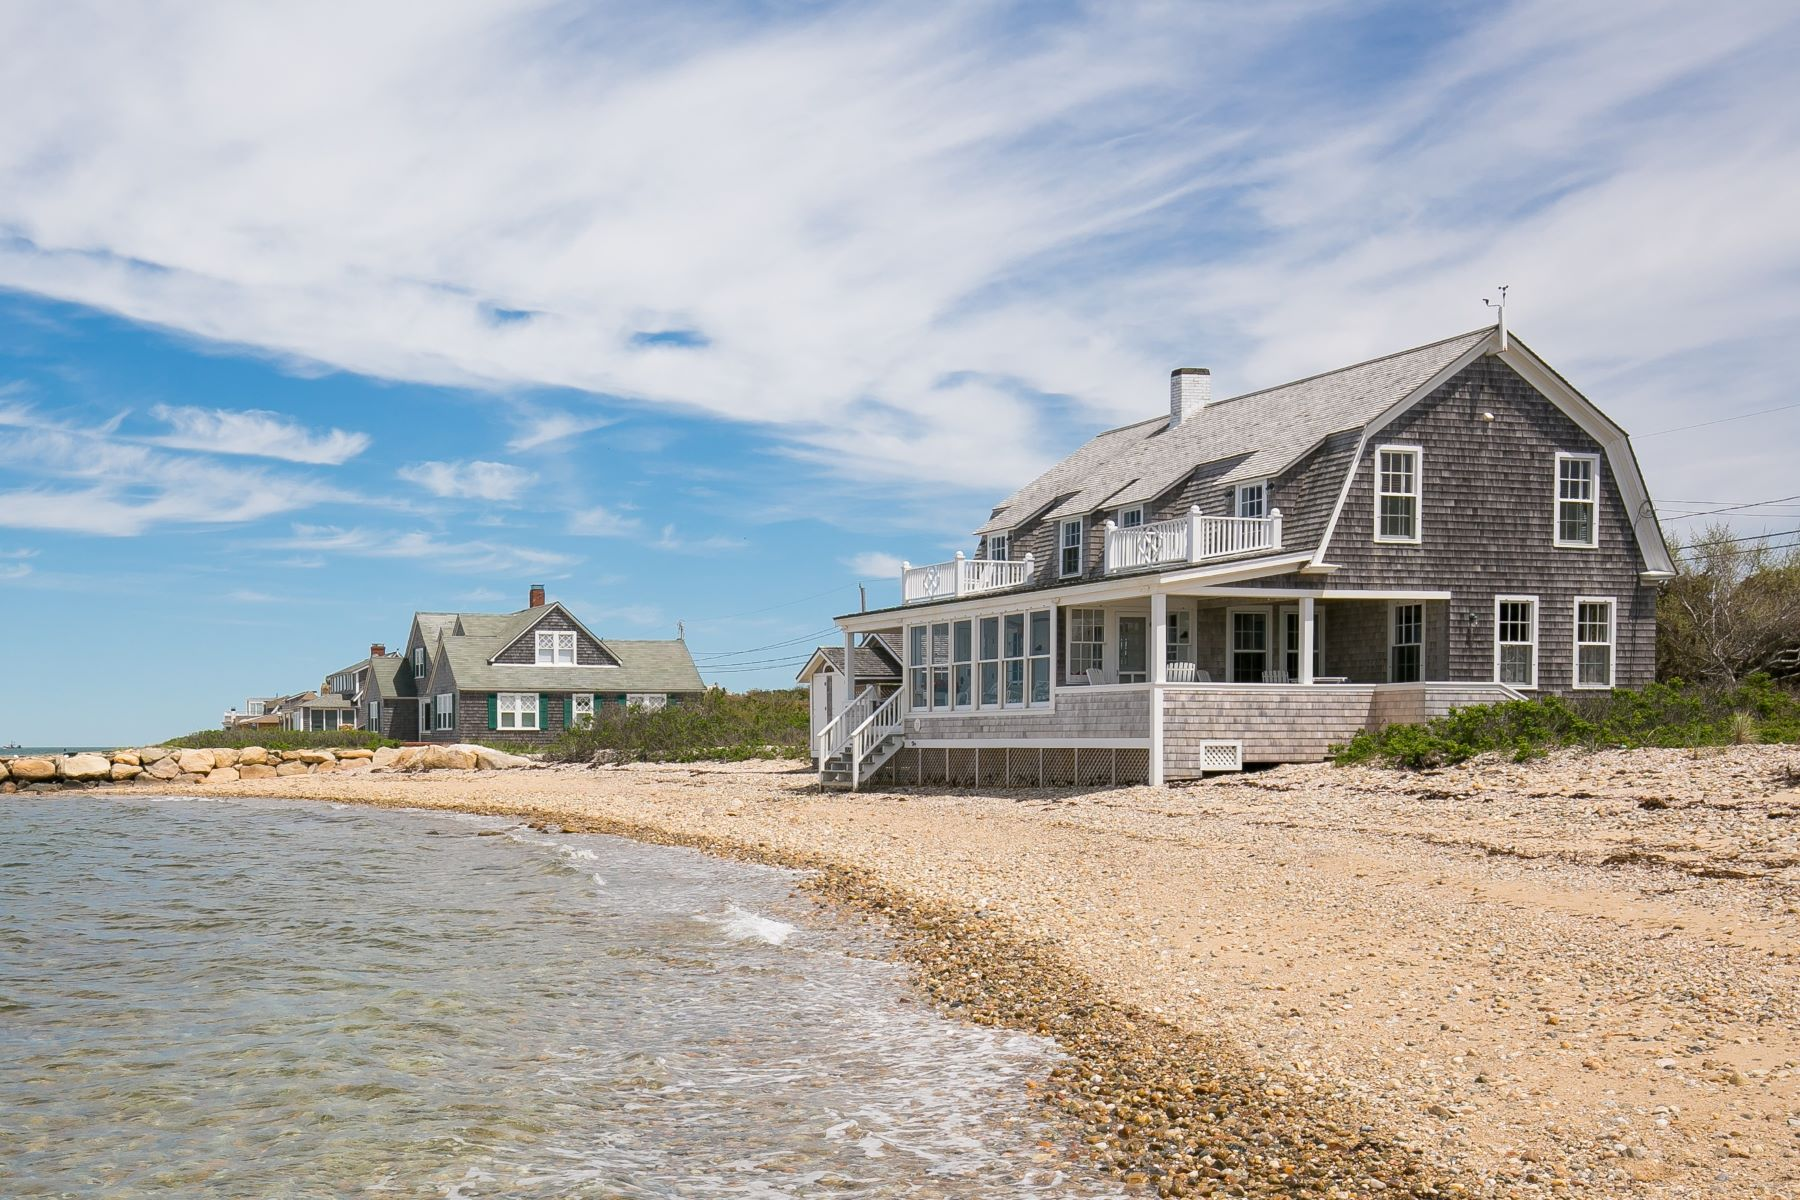 Single Family Home for Sale at Waterfront East Chop Beach House 325 East Chop Drive Oak Bluffs, Massachusetts, 02557 United States